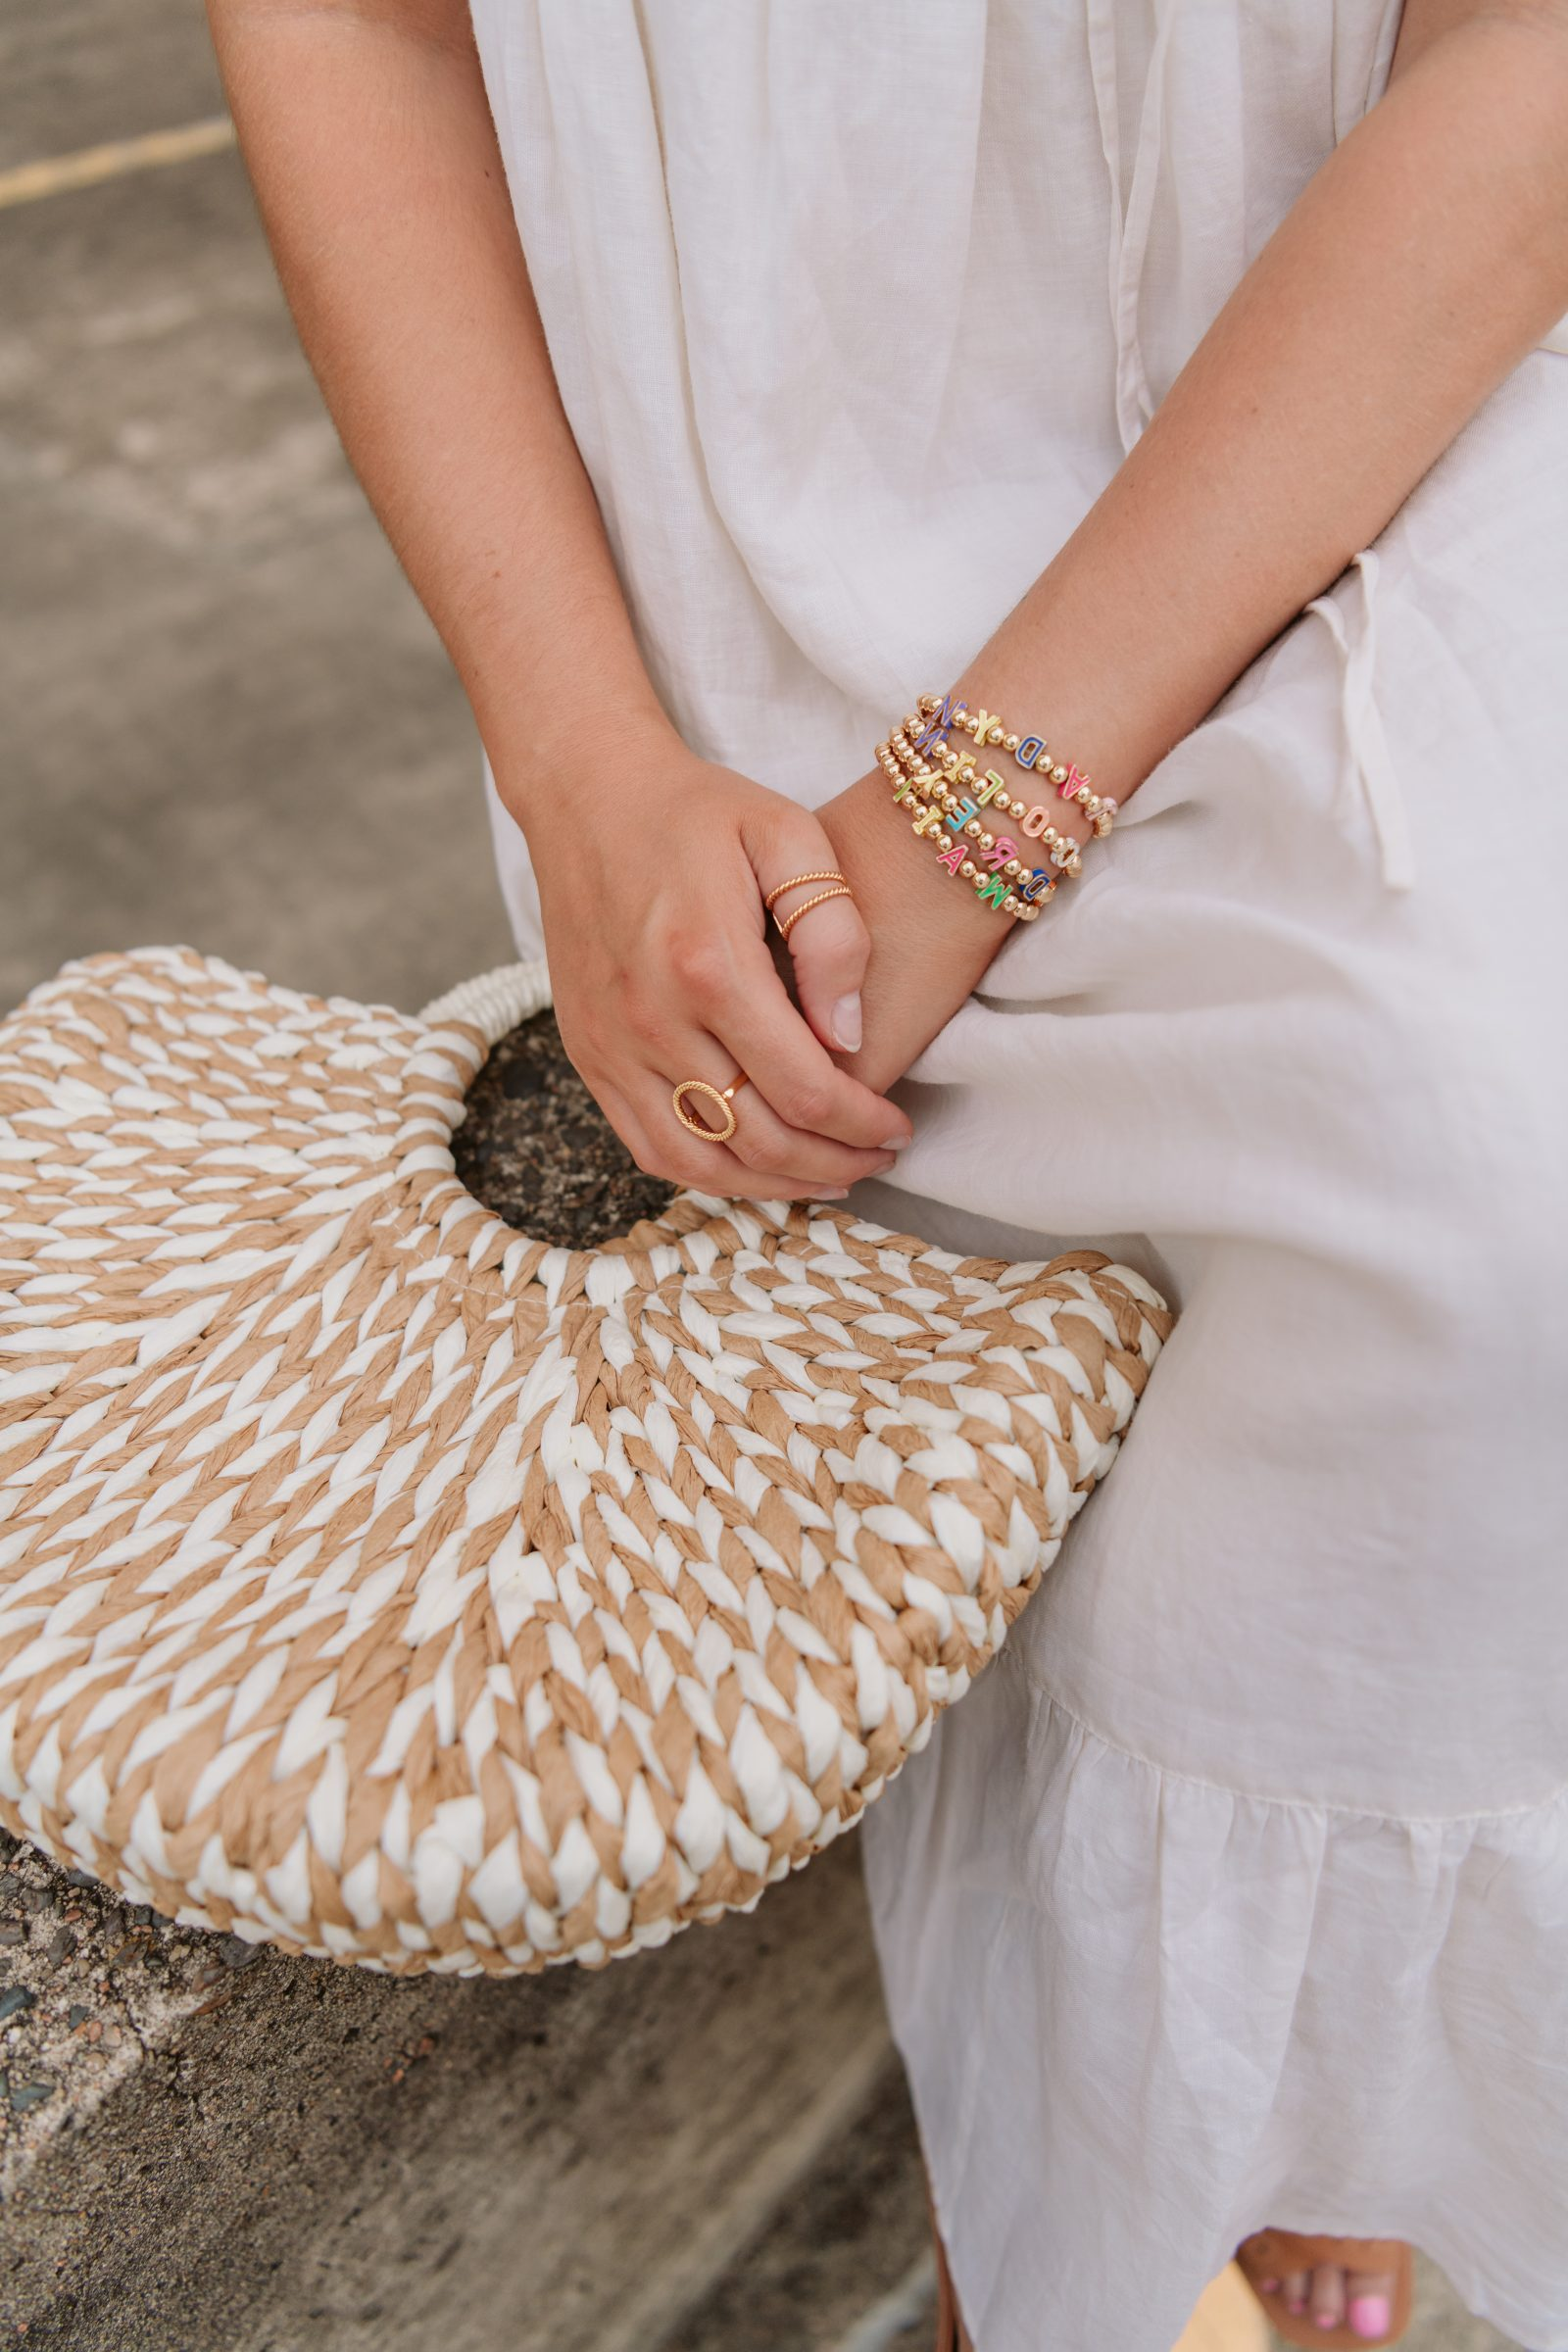 Houston Fashion Blogger Elly Brown wears a linen Summer dress with a straw bag for summer